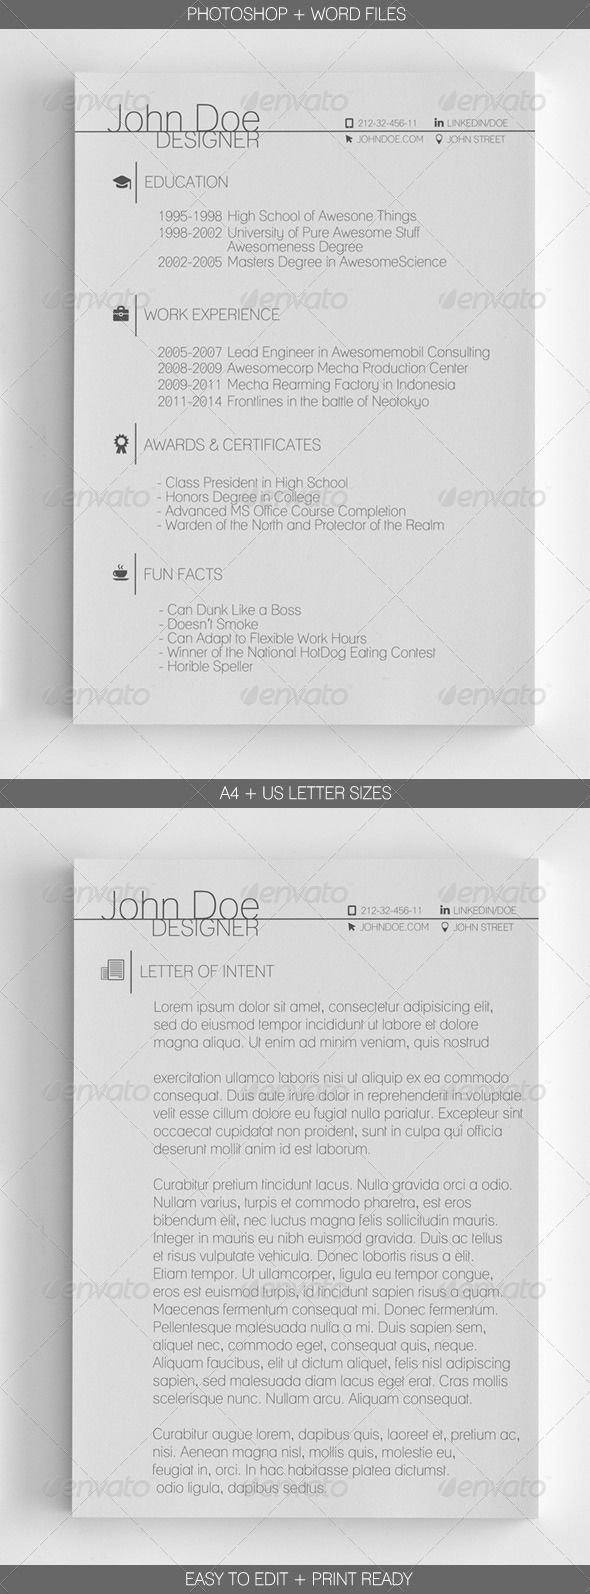 best images about basic resume professional a sleek and mini st two page resume template microsoft word and adobe photoshop files letter and sizes c